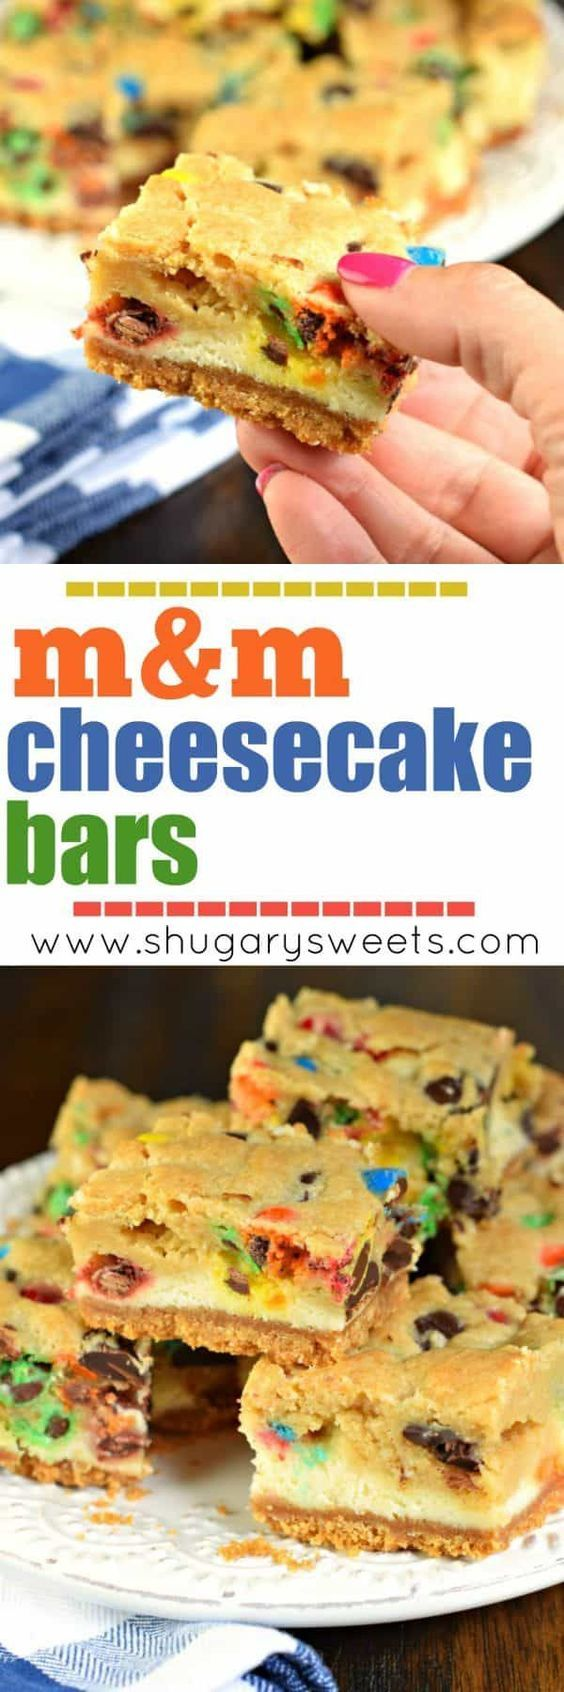 These M&M Cheesecake Bars have a sweet graham cracker crust, creamy cheesecake filling, and a chocolate chip cookie dough packed with M&M's on top! Be sure to sign up for my email…new recipes in your